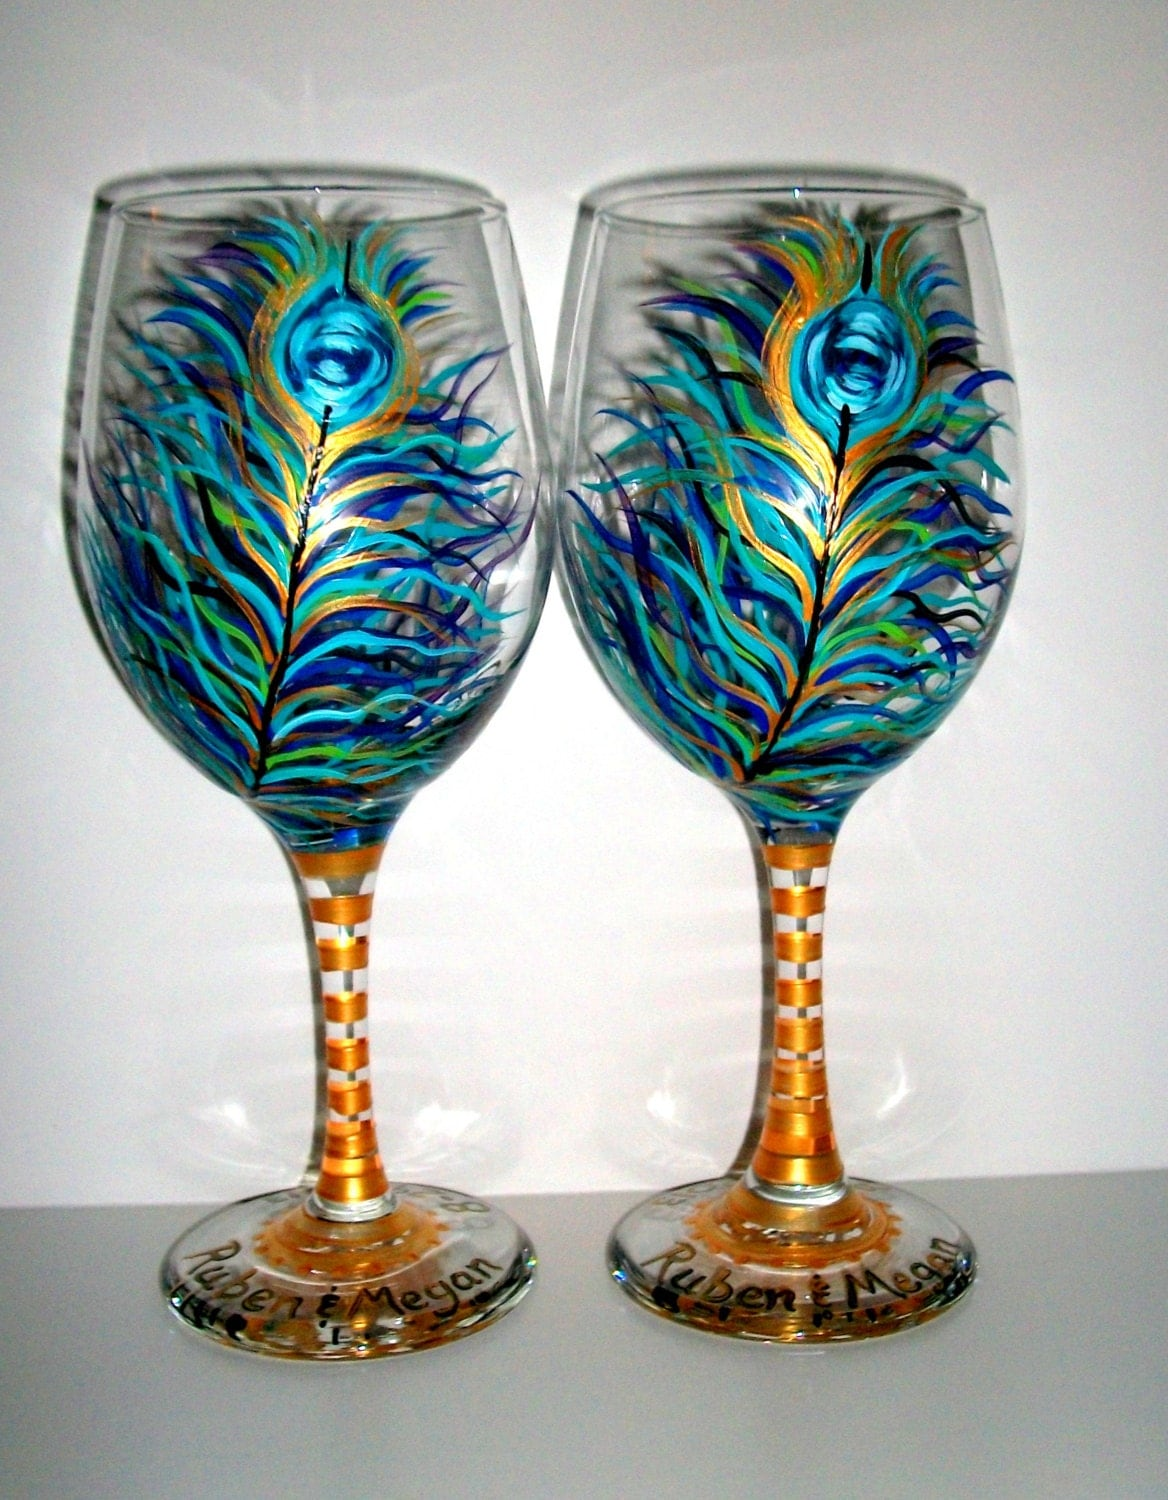 Peacock feathers hand painted wine glass 1 20 oz handpainted Images of painted wine glasses